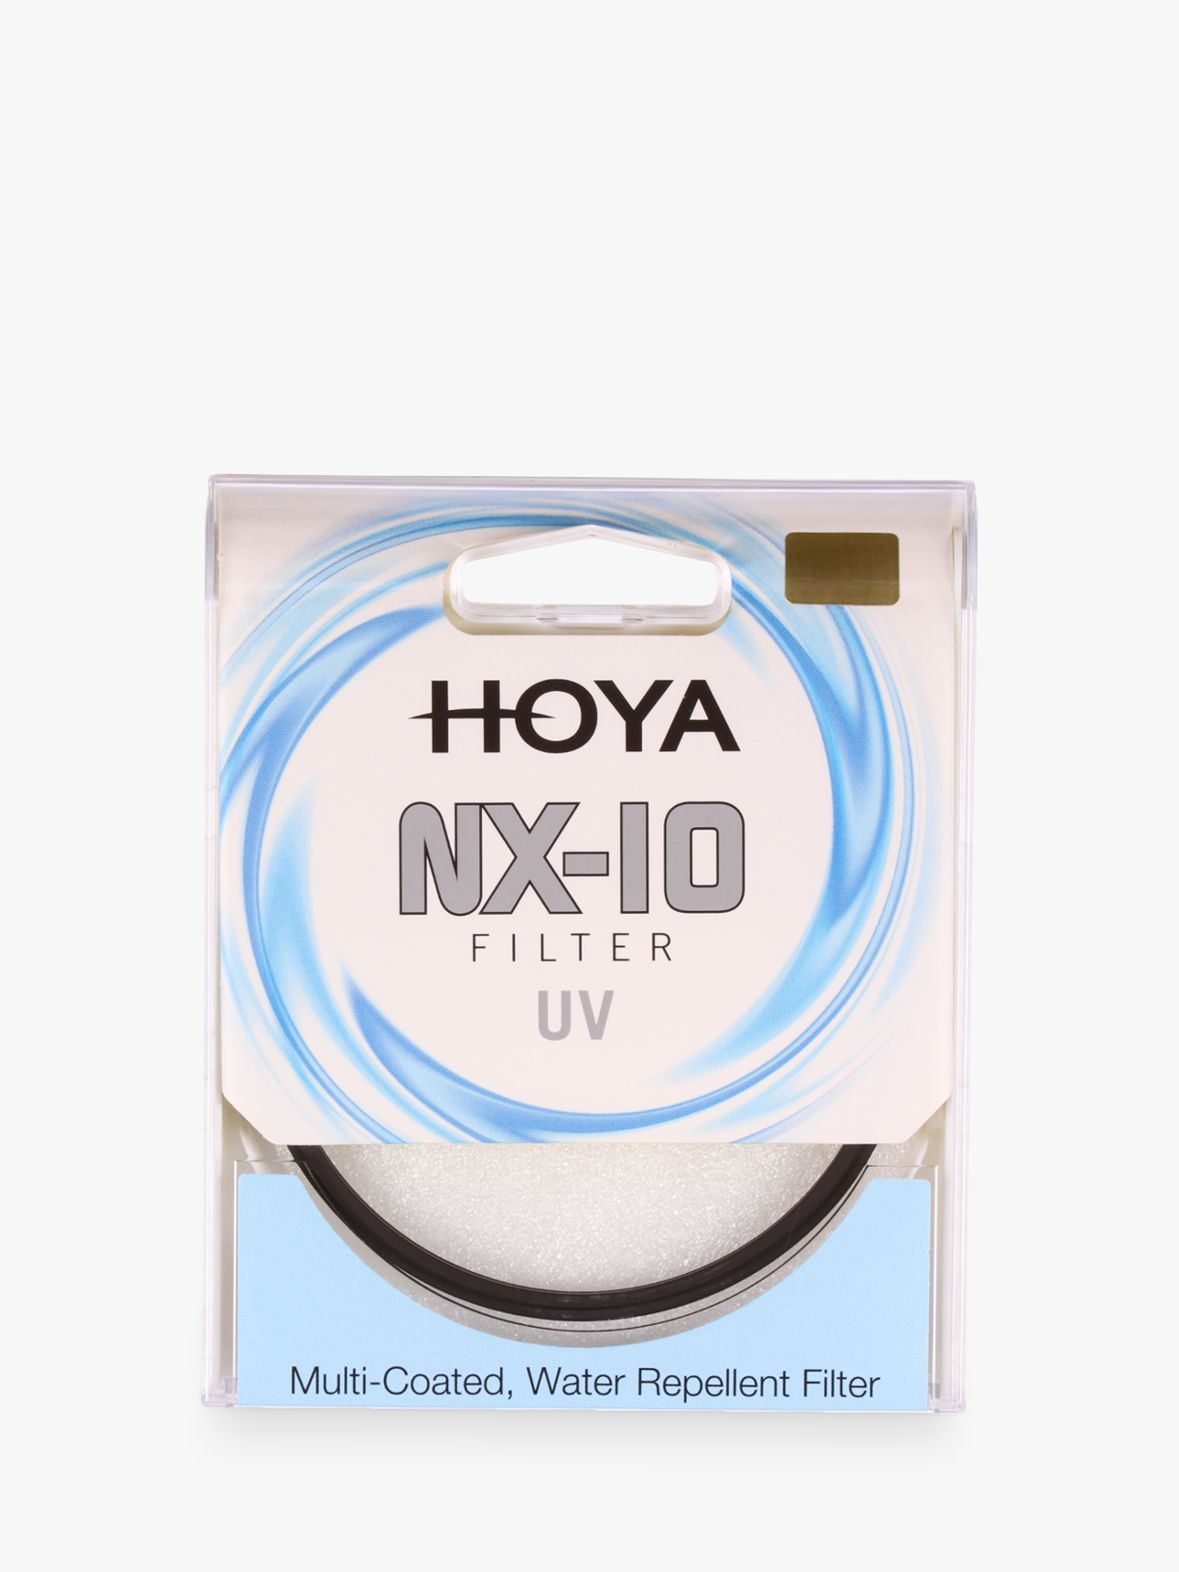 Hoya Hoya NX-10 UV Lens Filter, 40.5mm